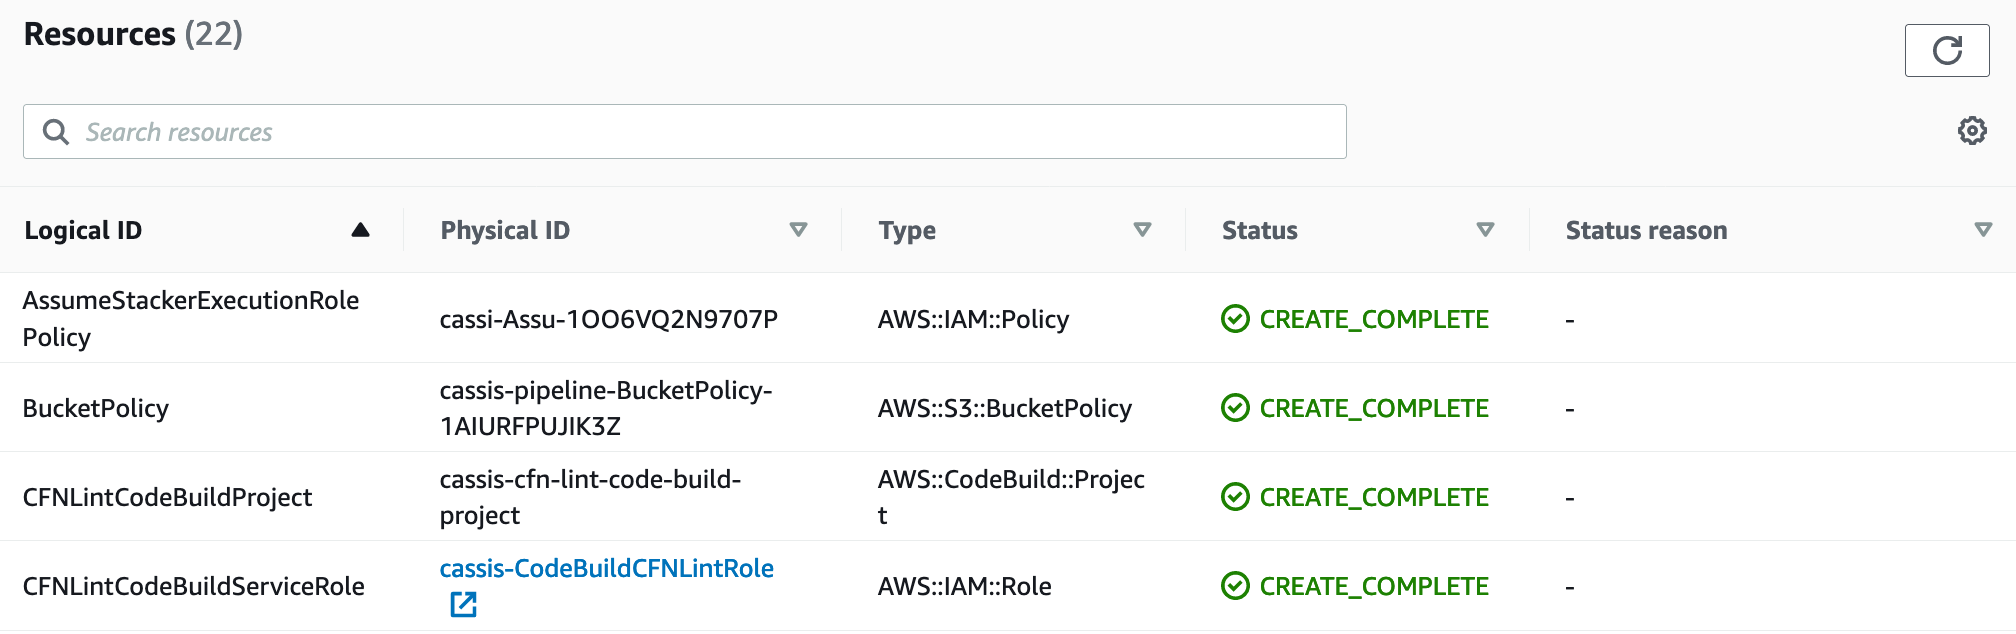 Screenshot of list of resources in CloudFormation.